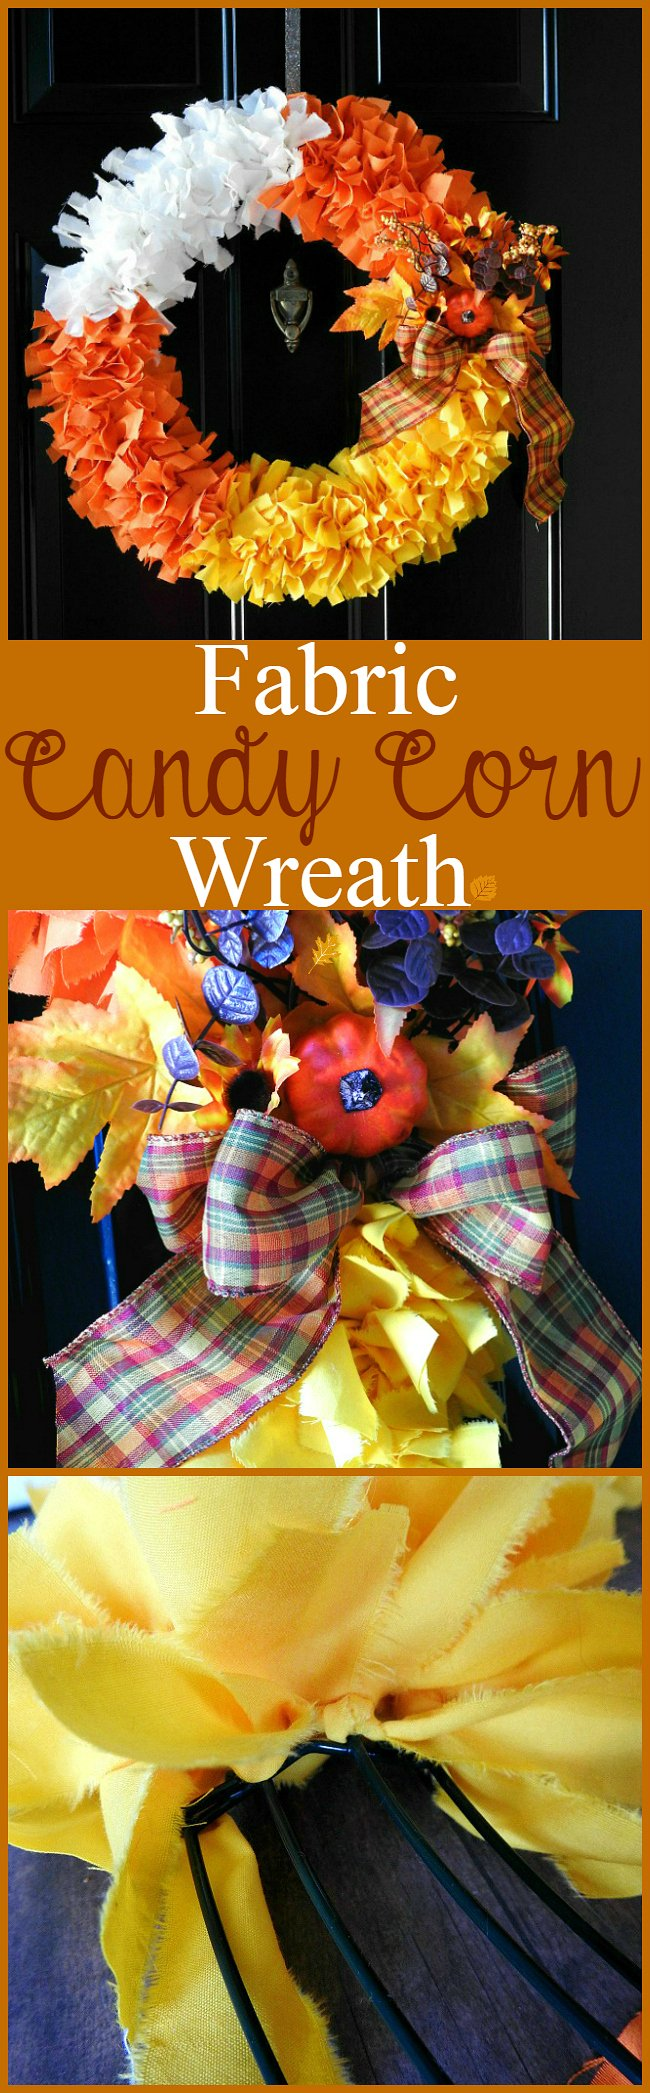 how-to-make-a-fabric-candy-corn-wreath-sewlicioushomedecor-com